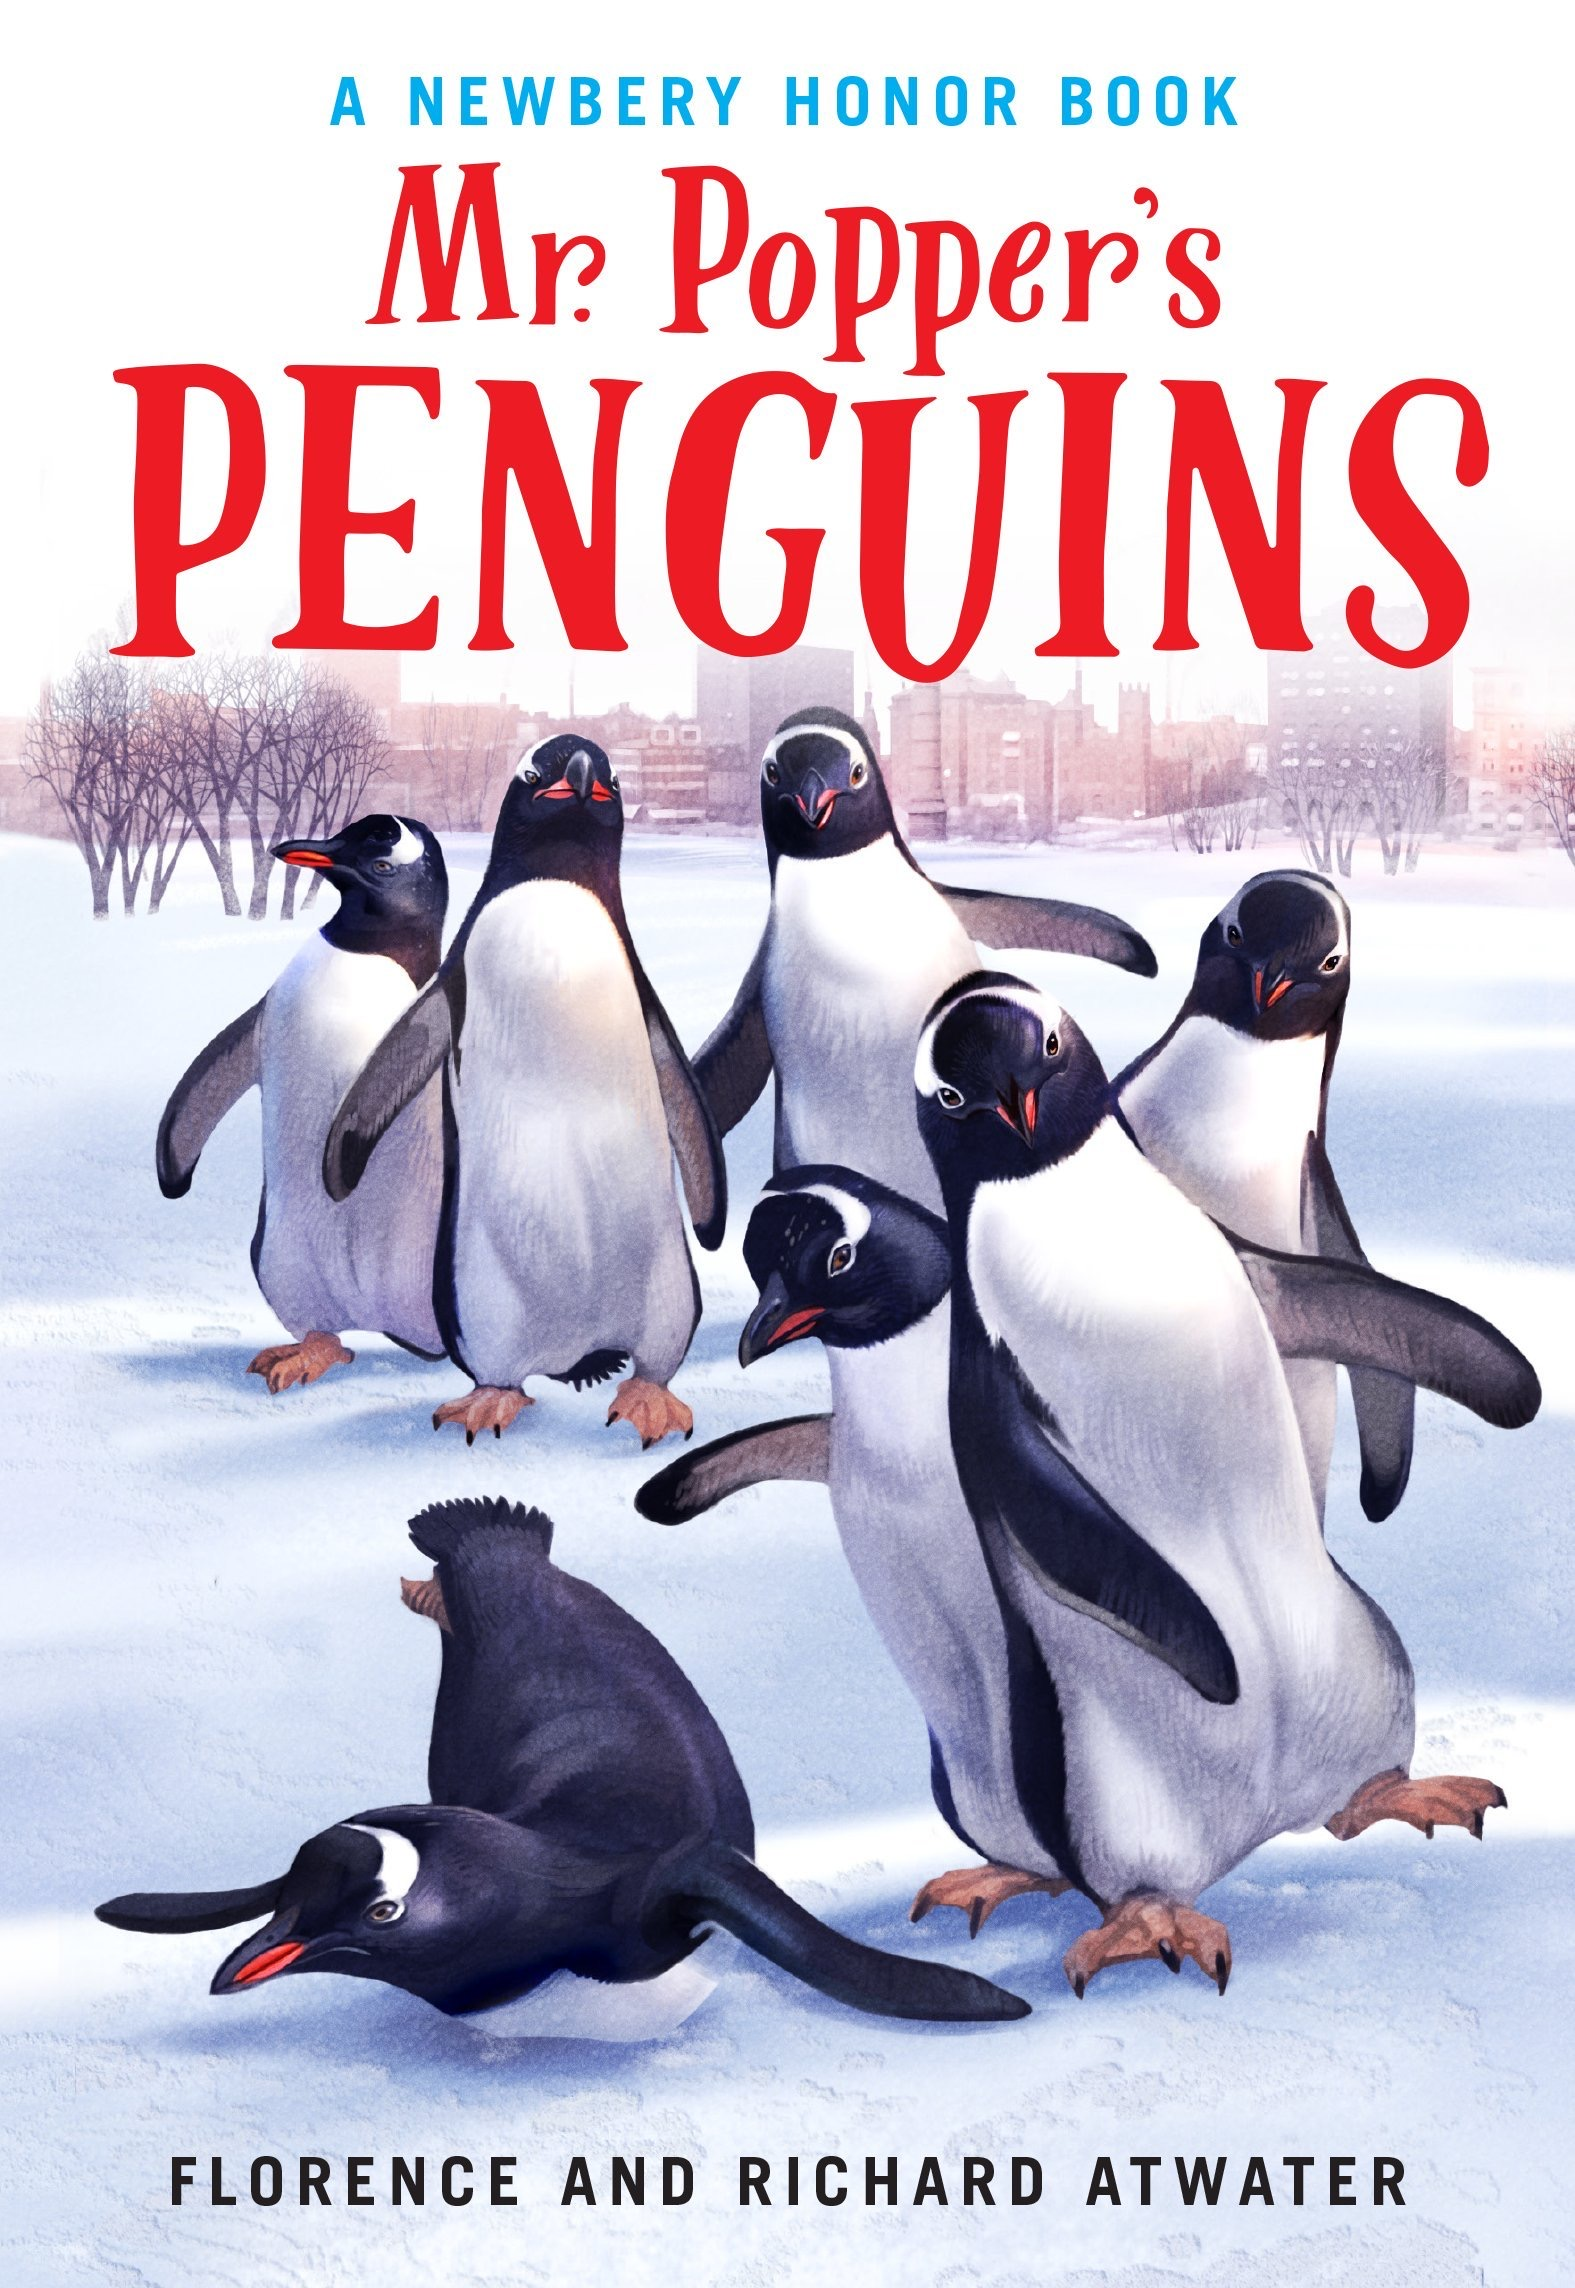 Book cover of Mr. Popper's Penguins by Florence and Richard Atwater